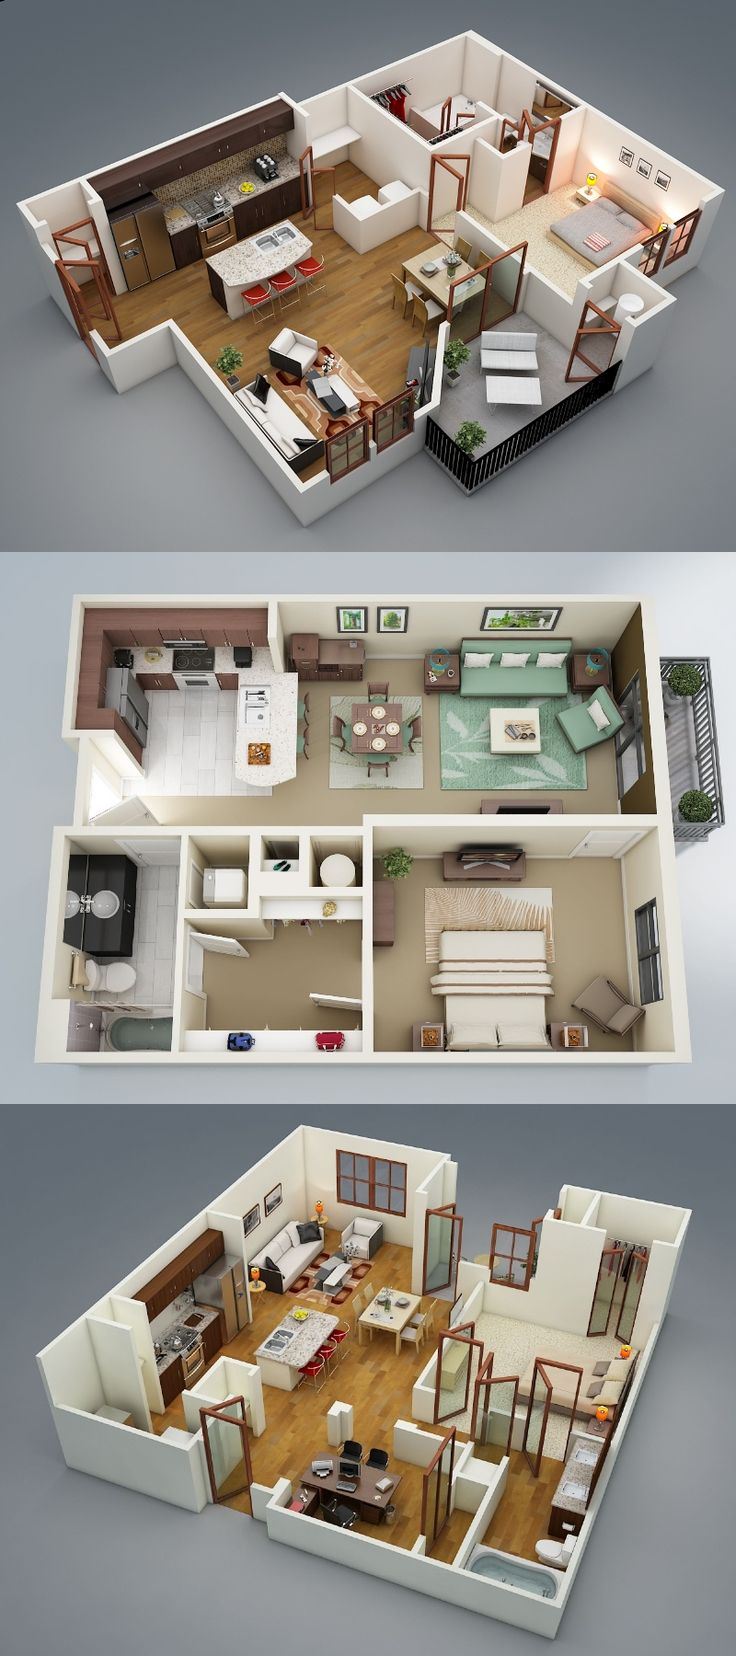 1 bedroom apartmenthouse plans visualizer rishabh kushwaha